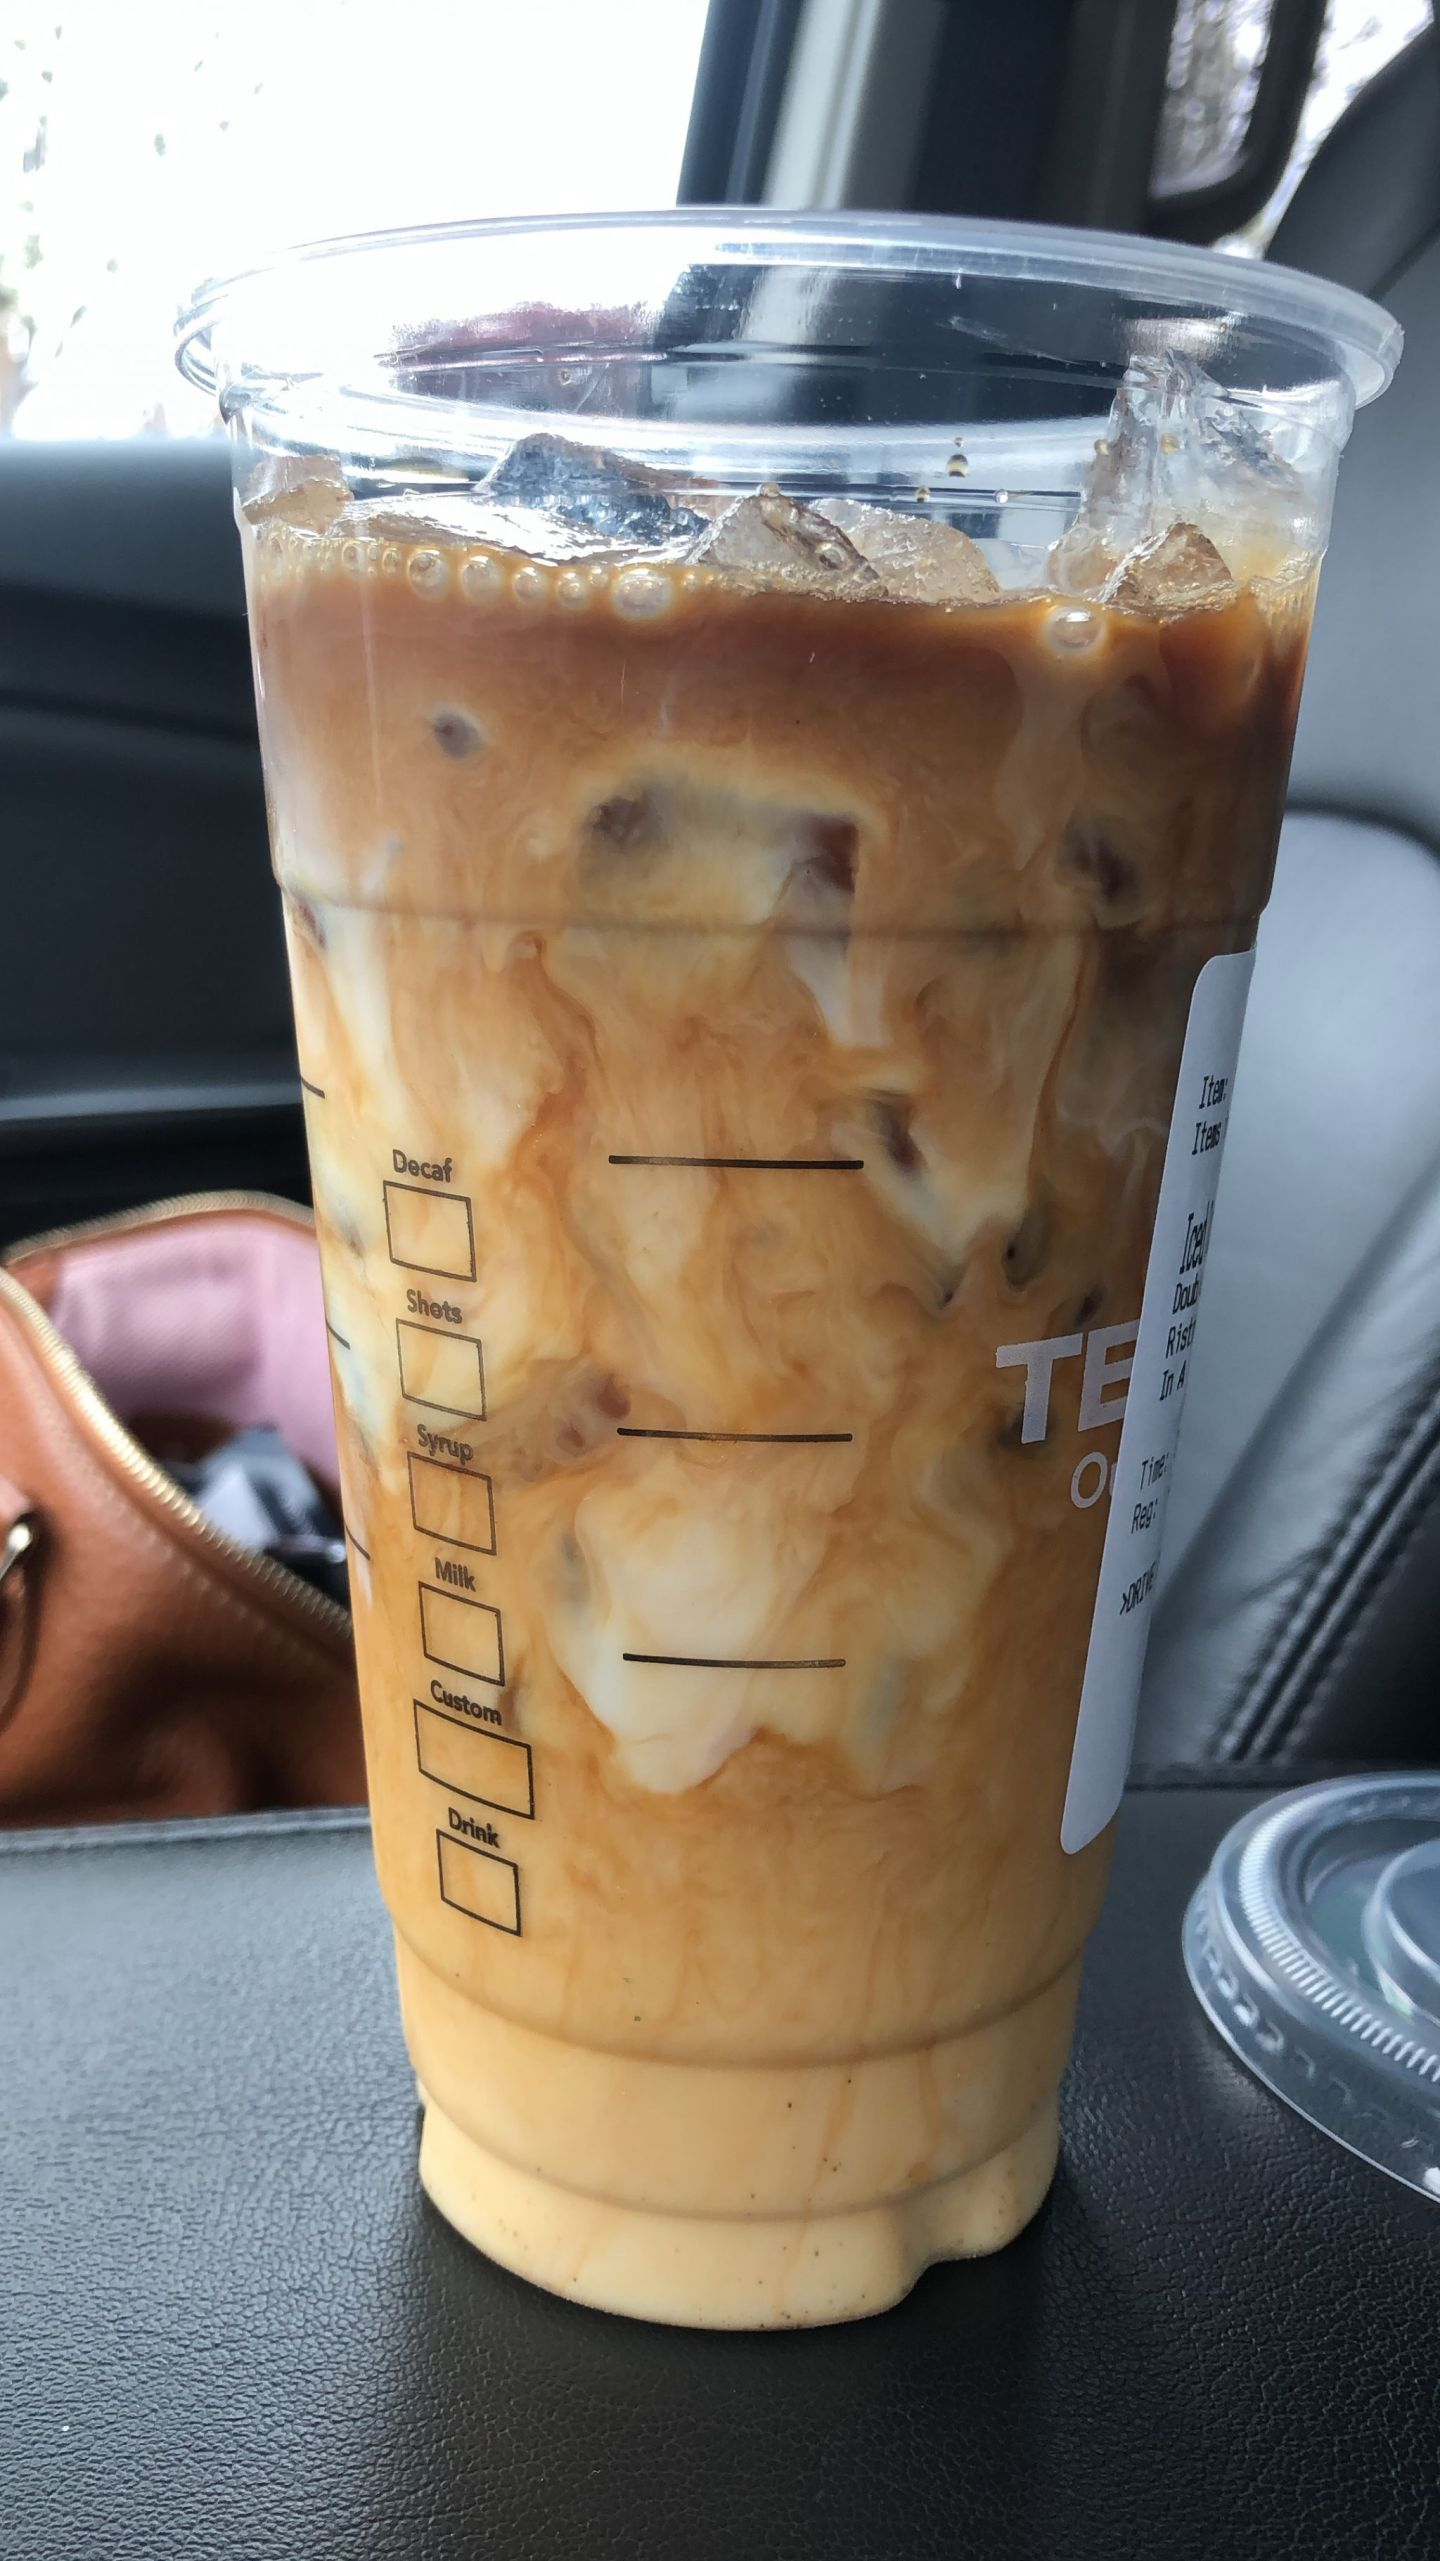 Weight Watcher Caramel Macchiato hack